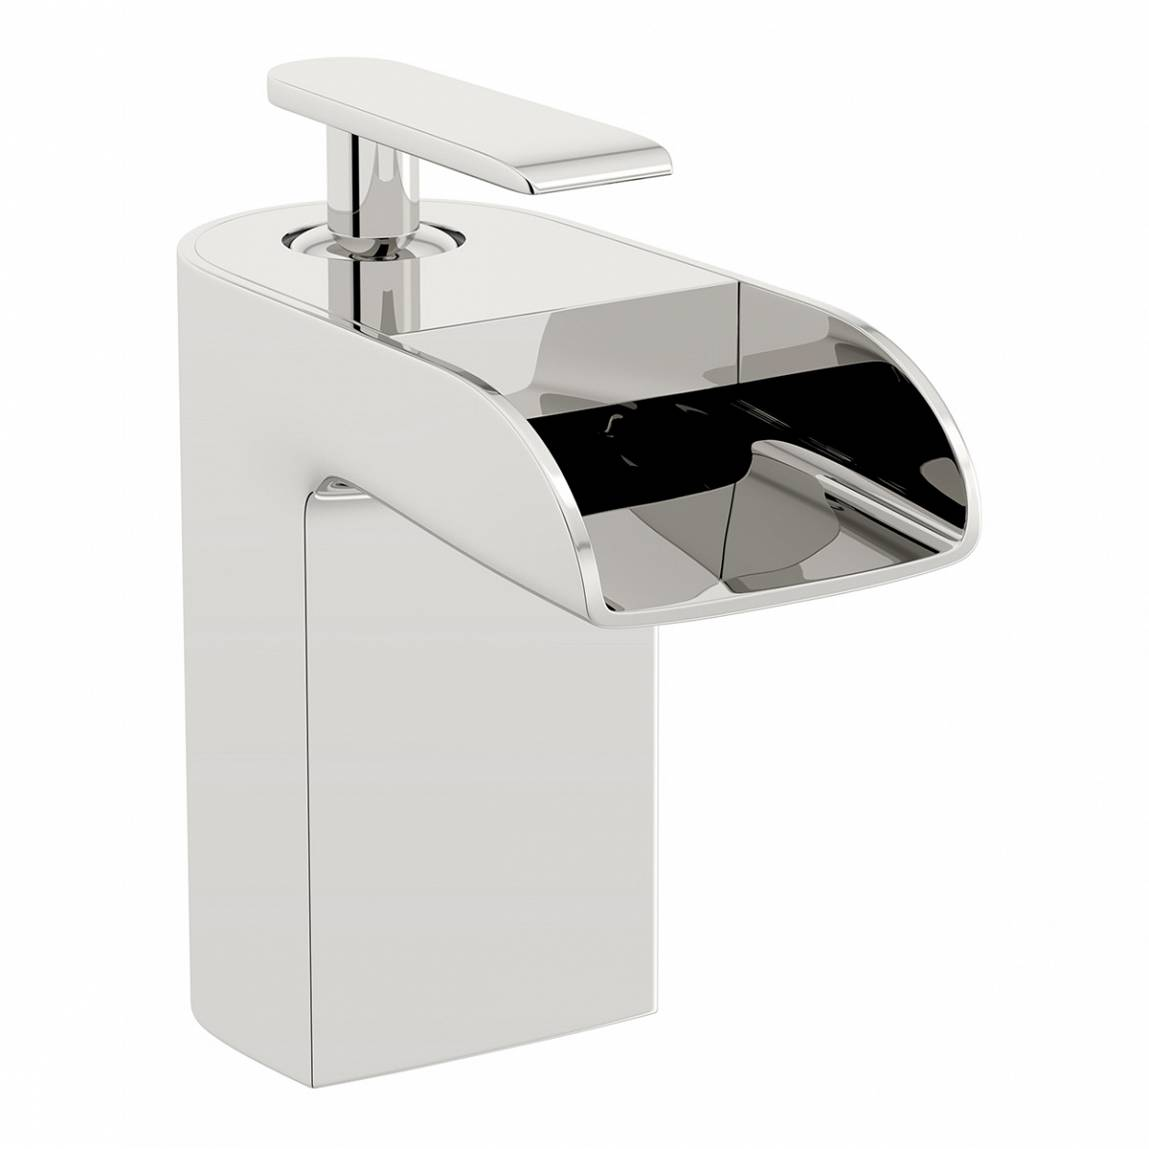 Image of Reinosa Waterfall Bath Mixer